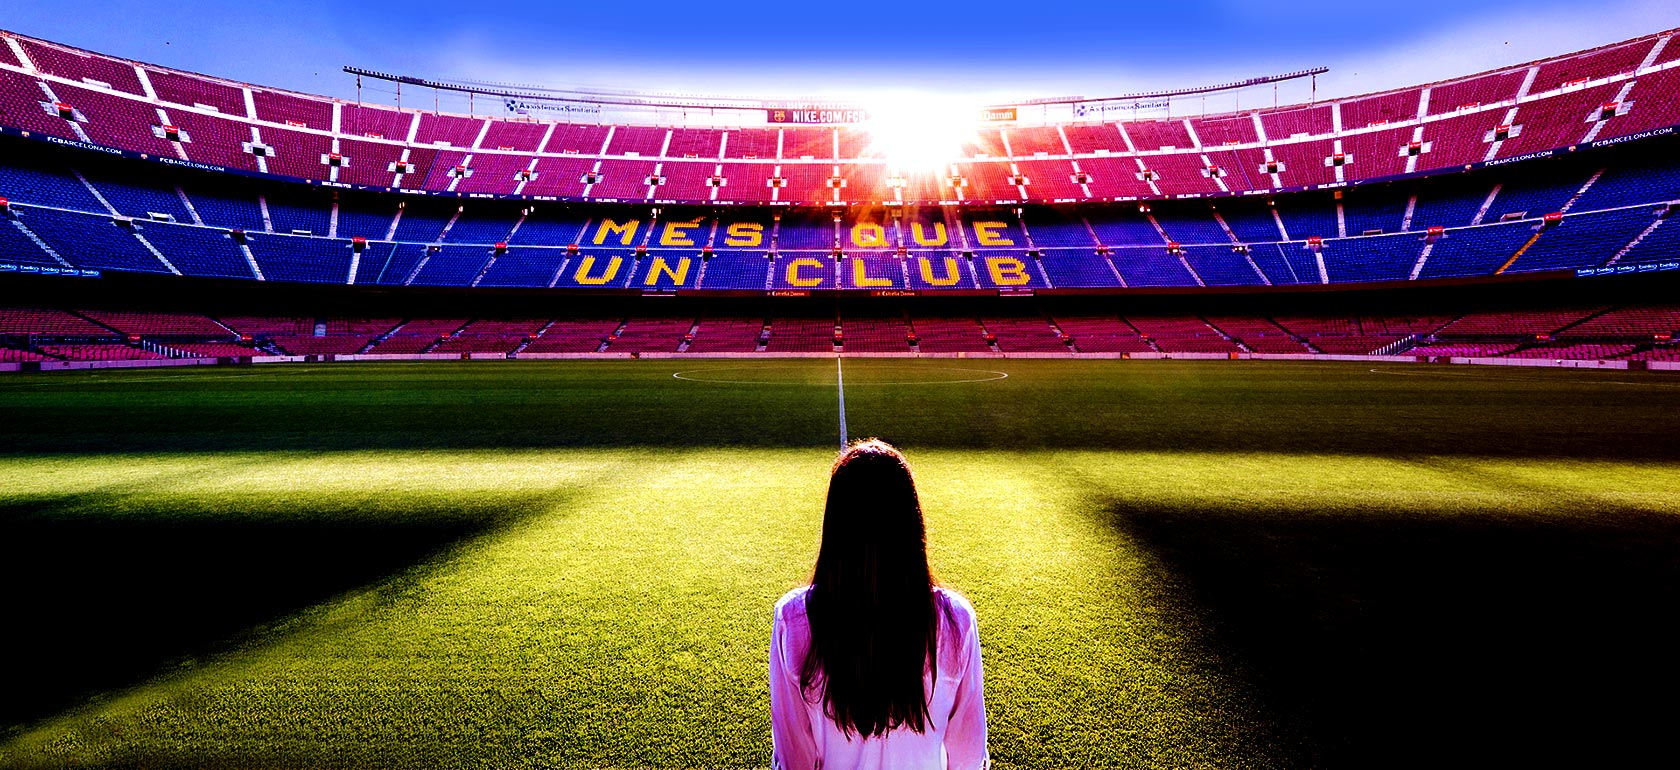 Ticket Camp Nou Experience & Hop on Hop off Bus